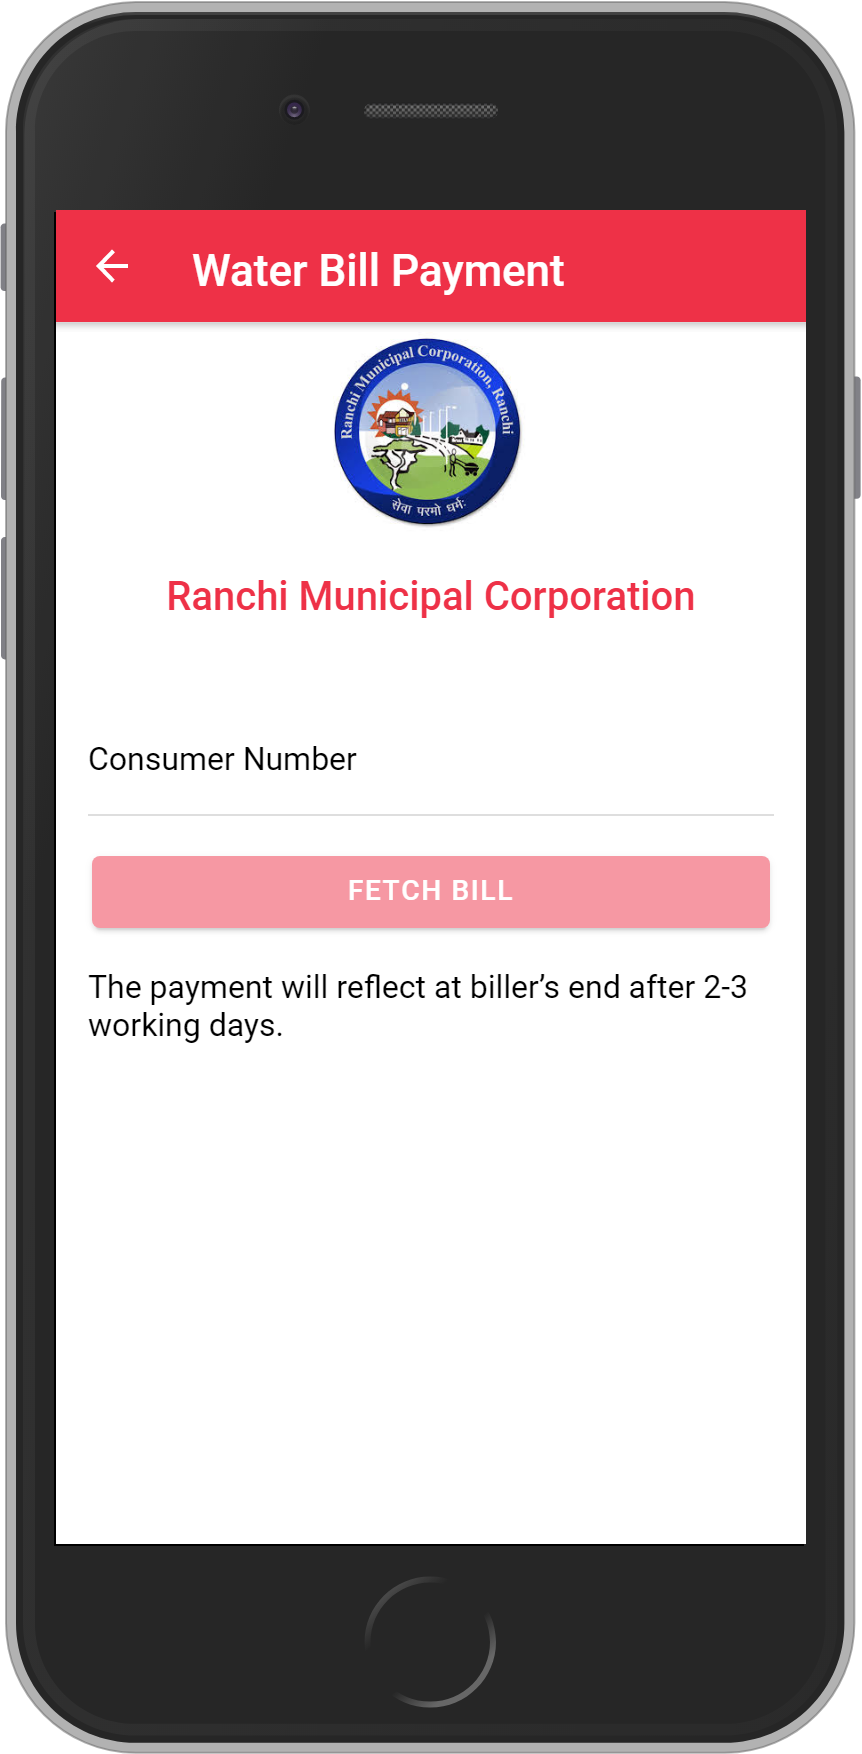 Get UNLIMITED <b>0.1%</b> CASHBACK on Jabalpur Municipal Corporation Bill Payment.